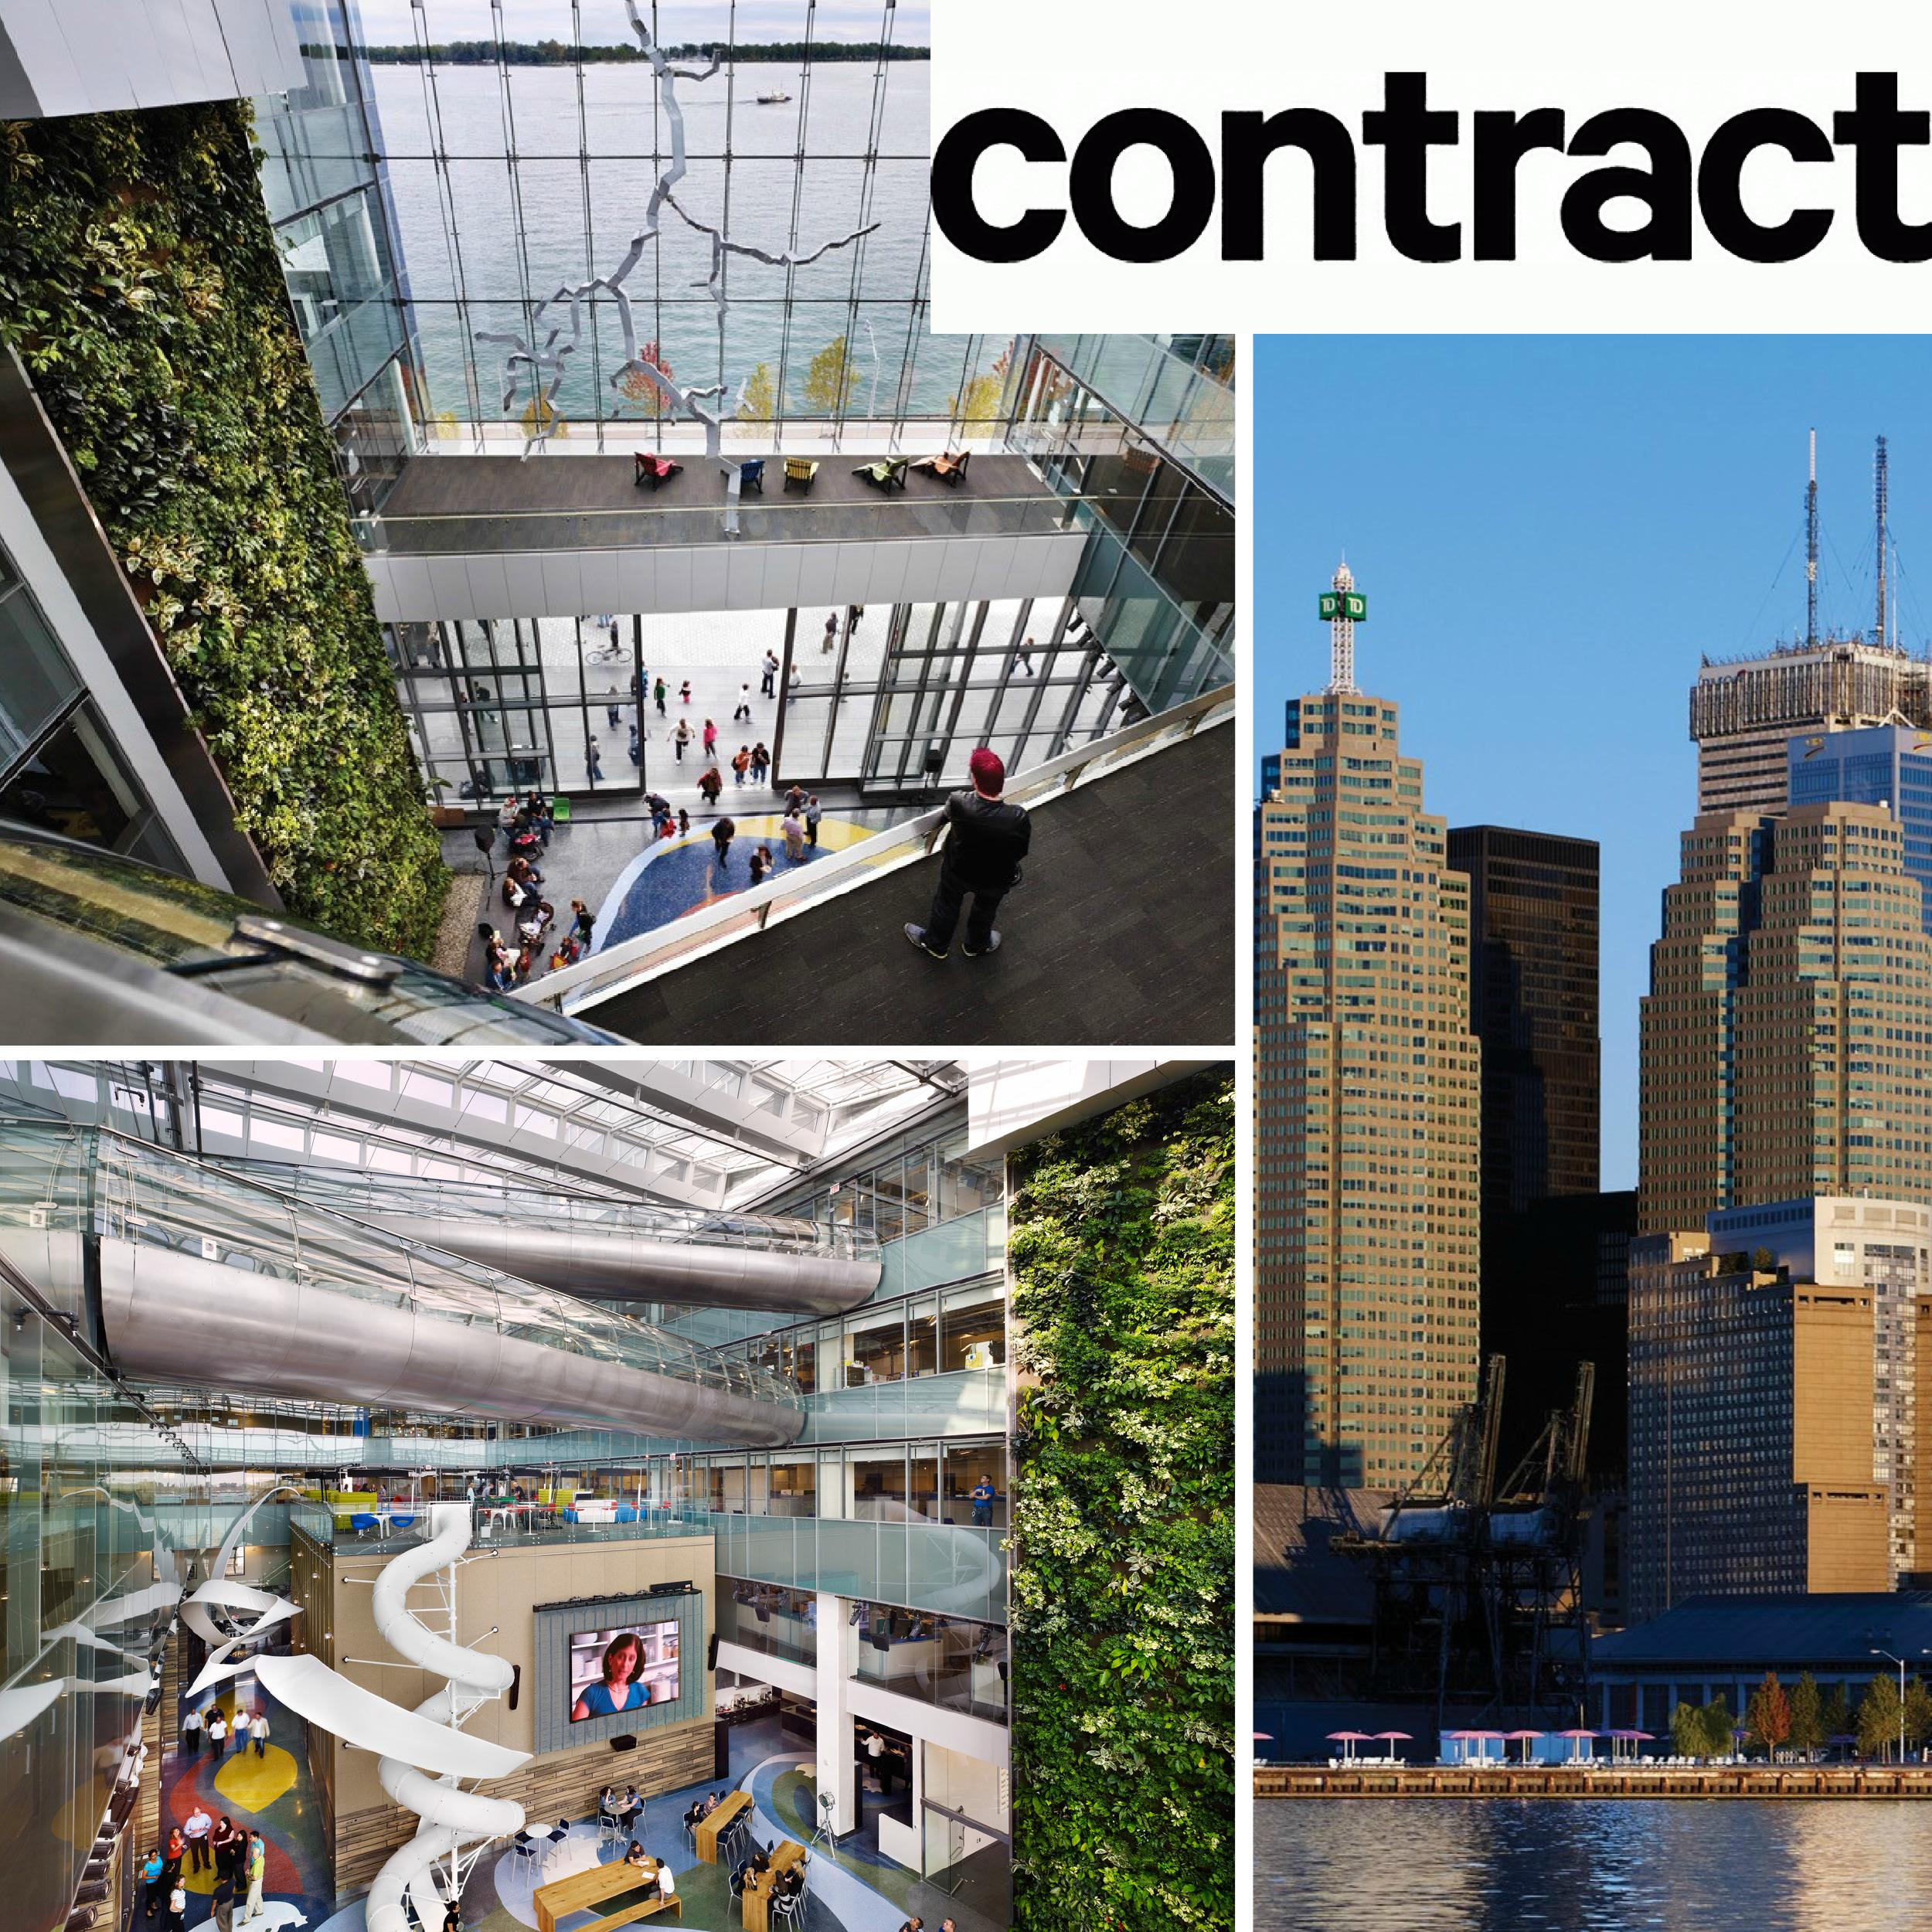 collage of photos of the Corsu Entertainment headquarters with the Contract magazine logo in the top right corner